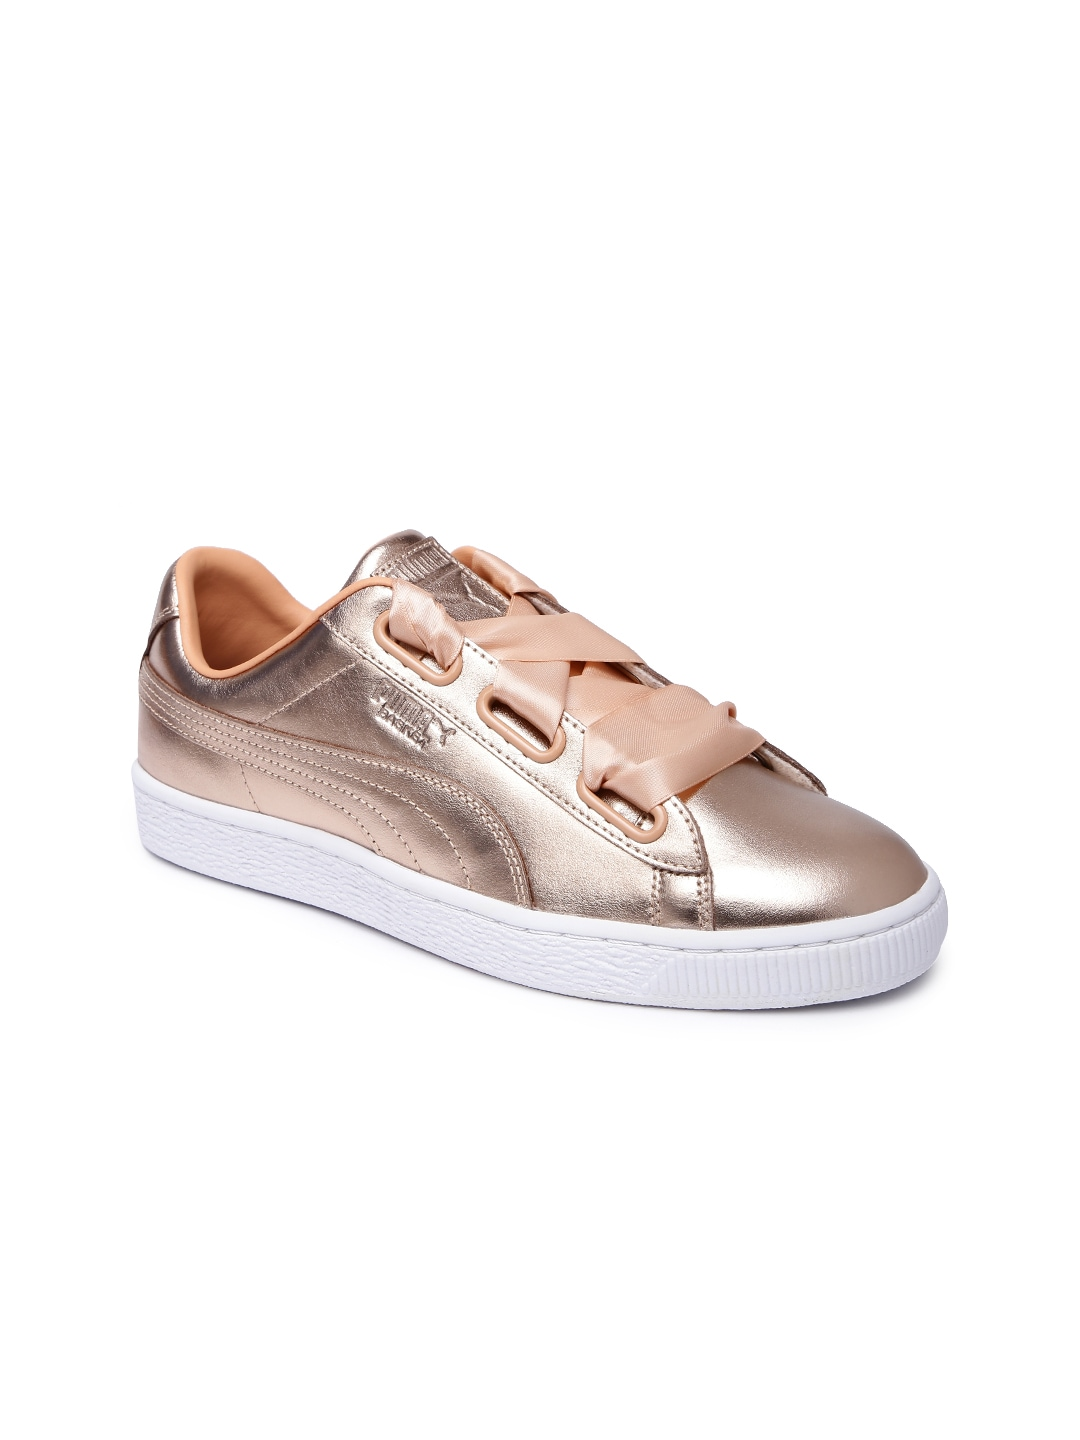 bcd54ff44f0 Casual Shoes For Women - Buy Women s Casual Shoes Online from Myntra